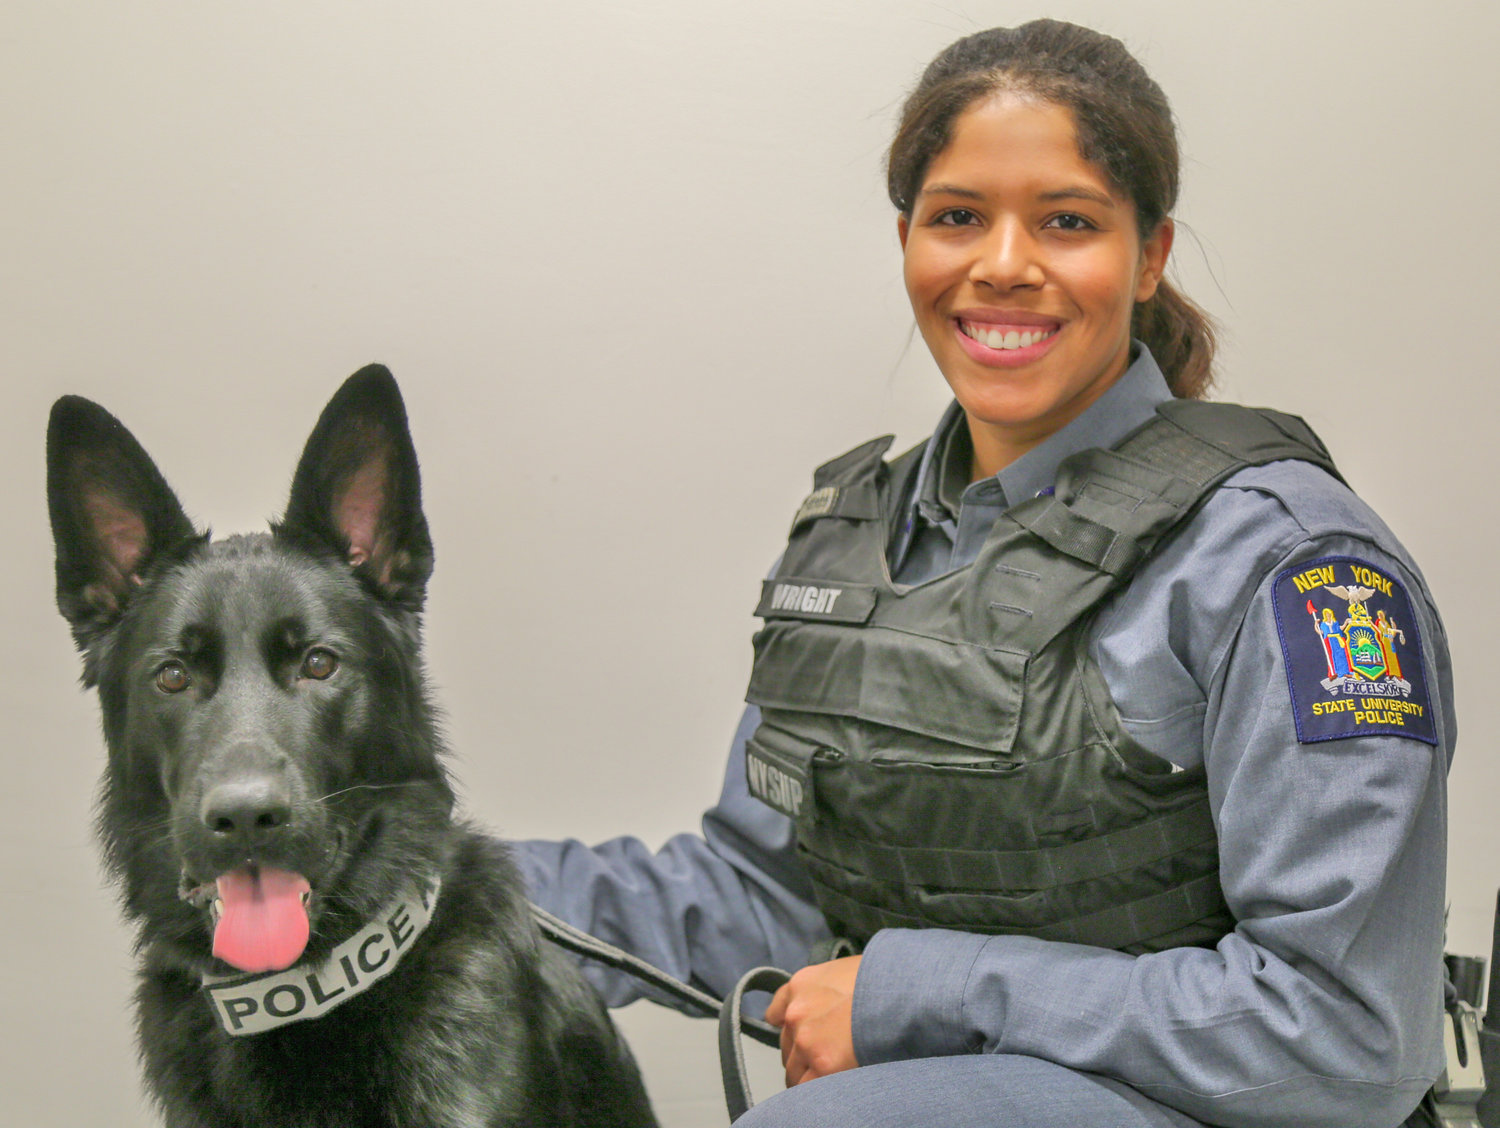 IN TRAINING — For the next 20 weeks, Bruin, a year-old black German Shepherd, and his new partner, New York State University Police Officer Nicole Wright, will undergo intense training at the New York State Police Canine Training Facility in Cooperstown.